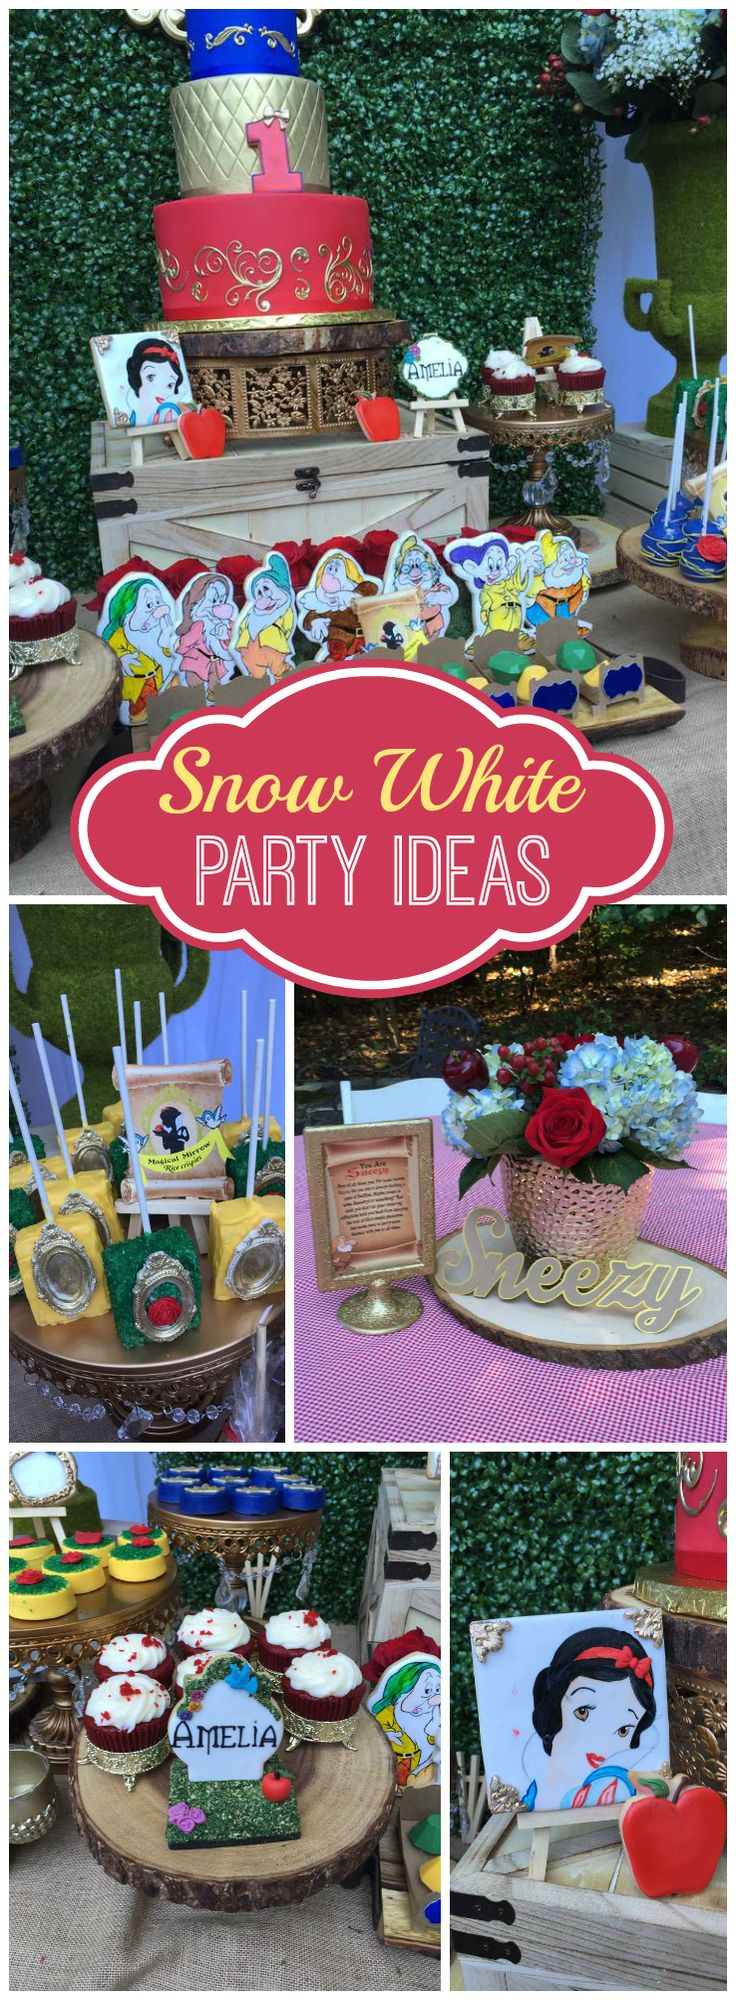 259 best Snow White Party Ideas images on Pinterest | Birthday ...